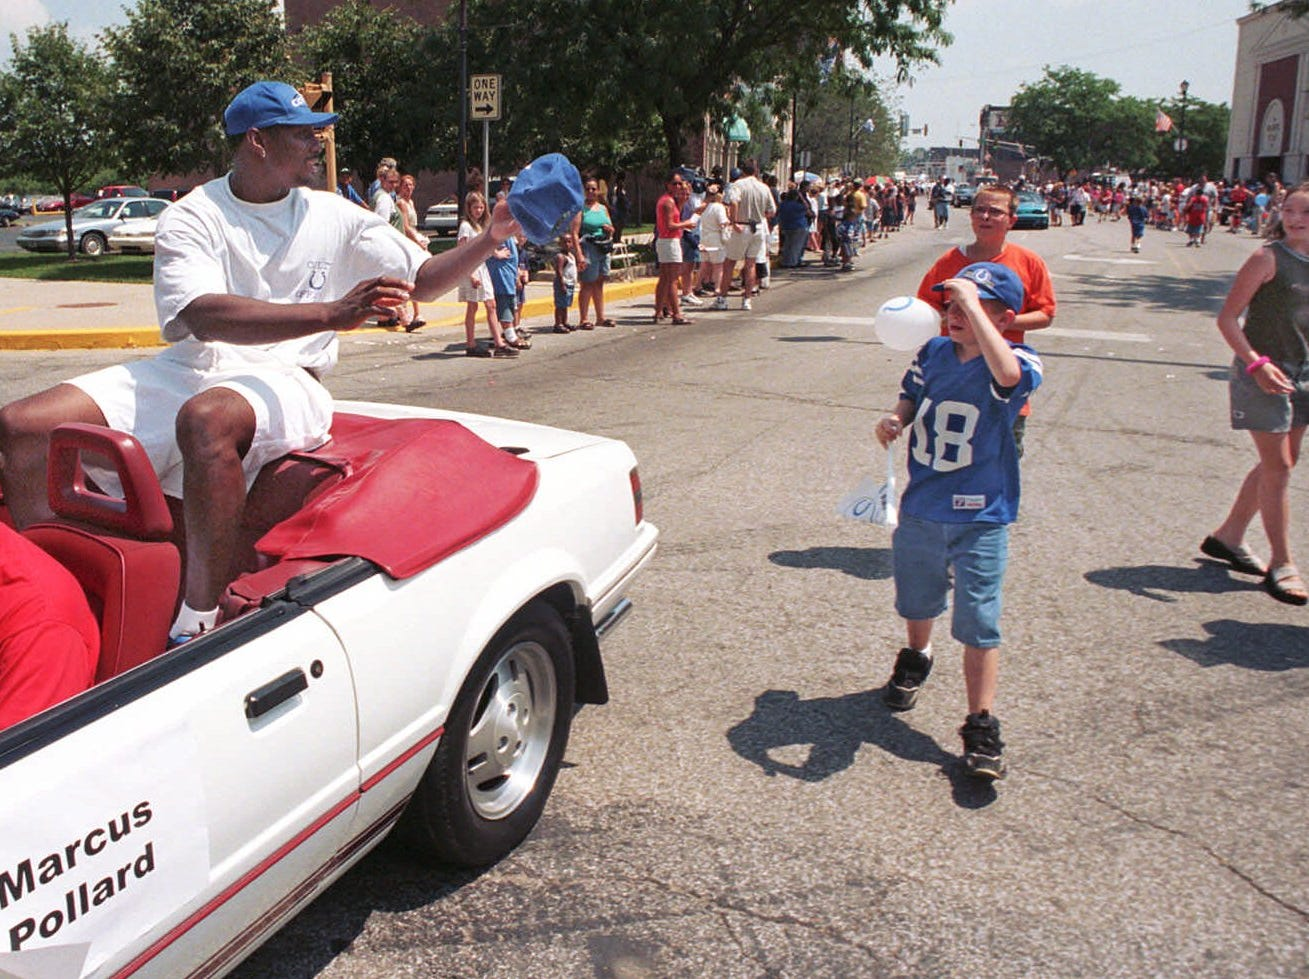 Indianapolis Colts Marcus Pollard tight end, returns a cap he autographed for a fan during the Colts welcome parade through downtown Terre Haute, Ind., Thursday, July 22, 1999. The Colts moved their summer training camp to the Rose-Hulman Institute of Technology campus in Terre Haute this year.